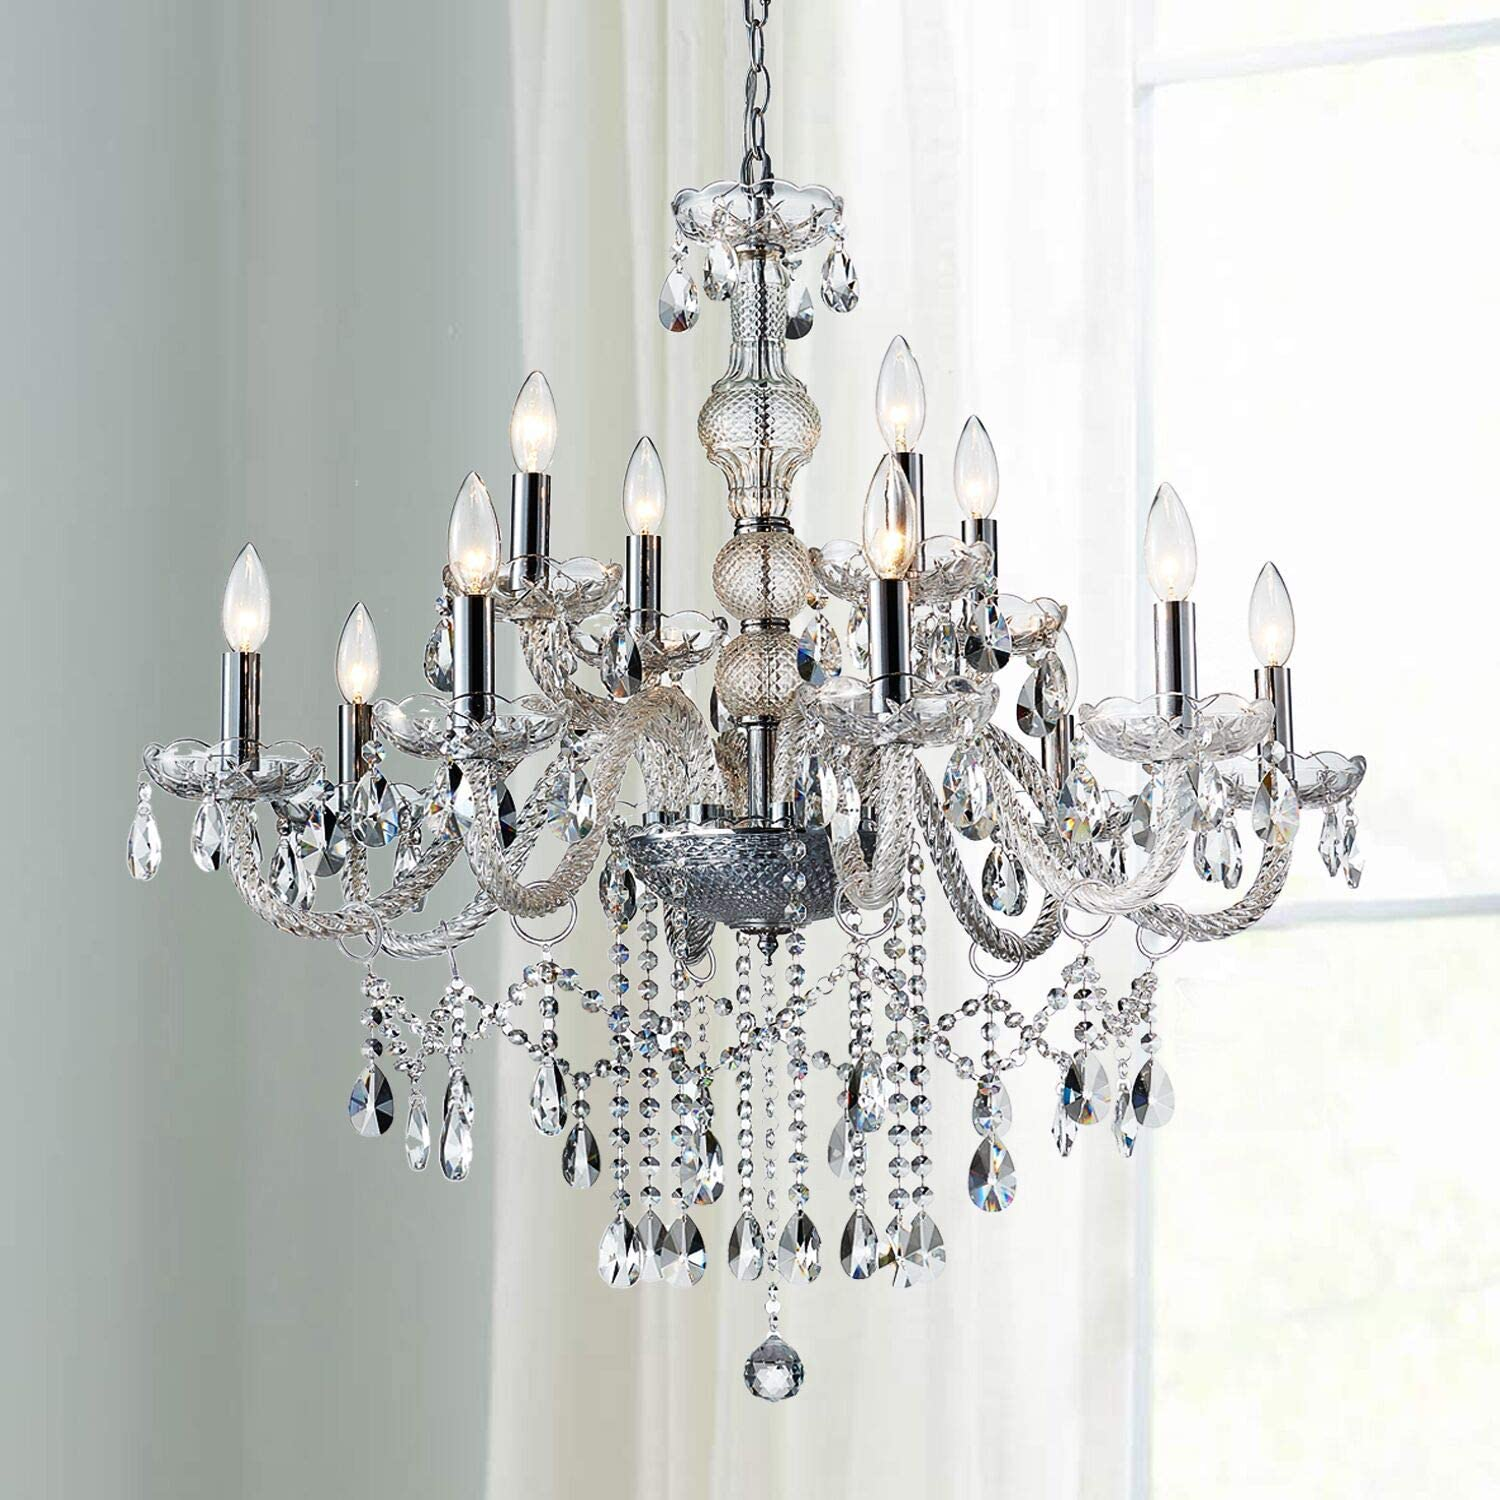 Saint Mossi 12-Lights Max 75% OFF Crystal Chandelier C K9 with High material Light Fixture